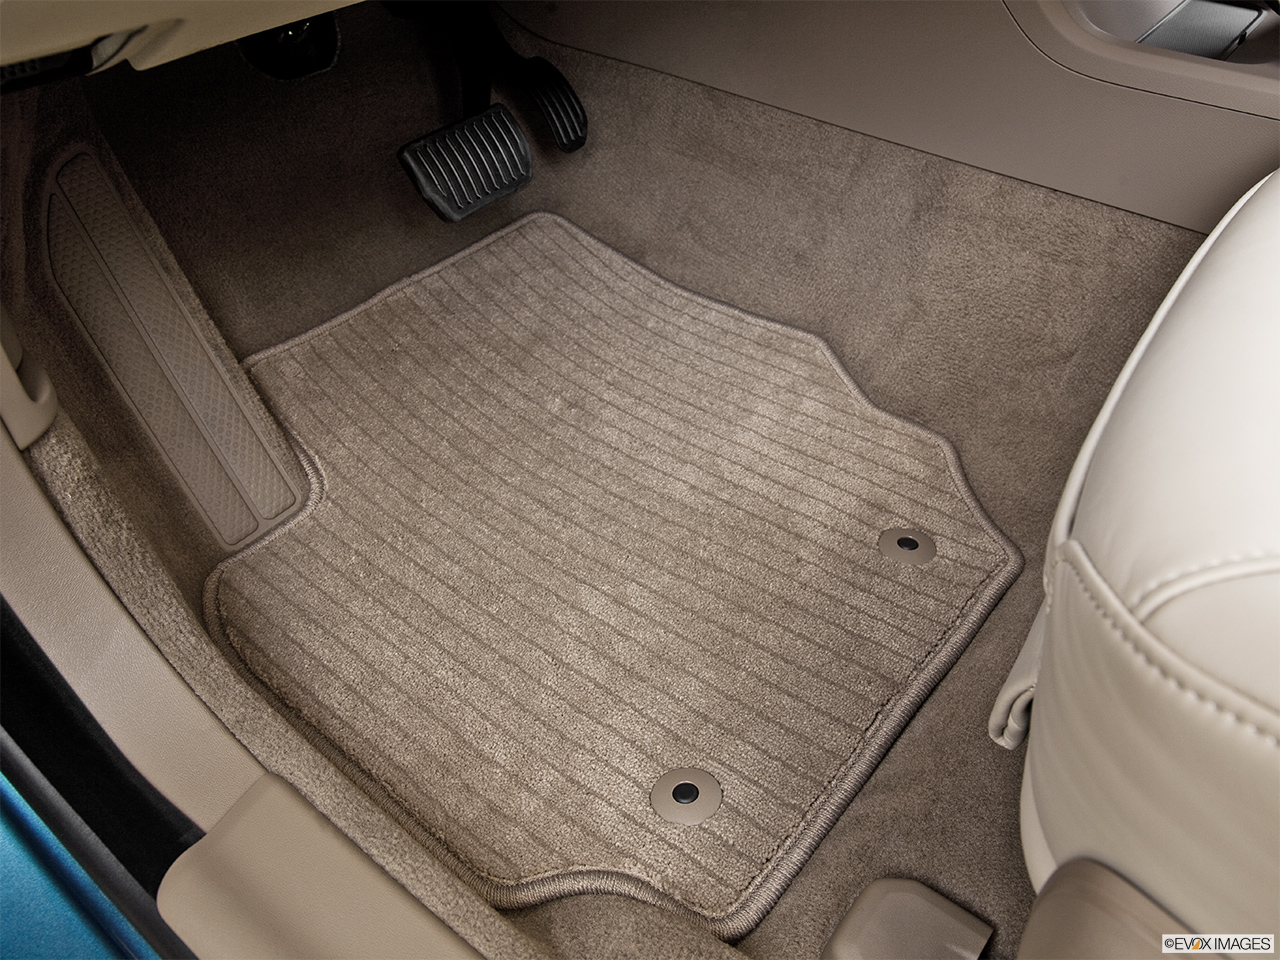 2014 Volvo S80 T6 AWD Platinum Driver's floor mat and pedals. Mid-seat level from outside looking in.